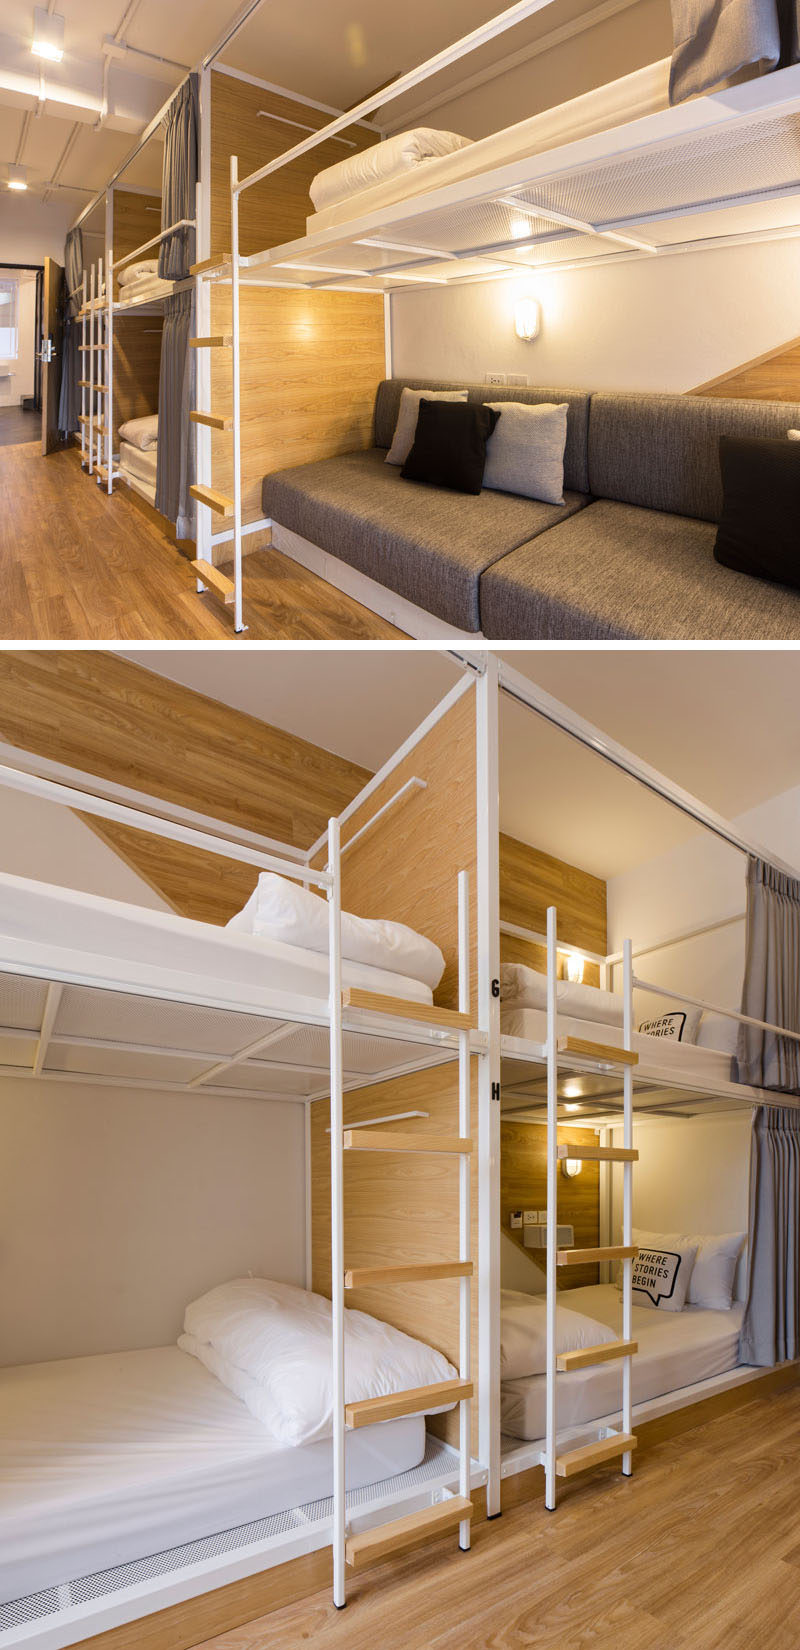 Stunning In this modern Bangkok hostel the dormitory rooms have been set up with bunk beds